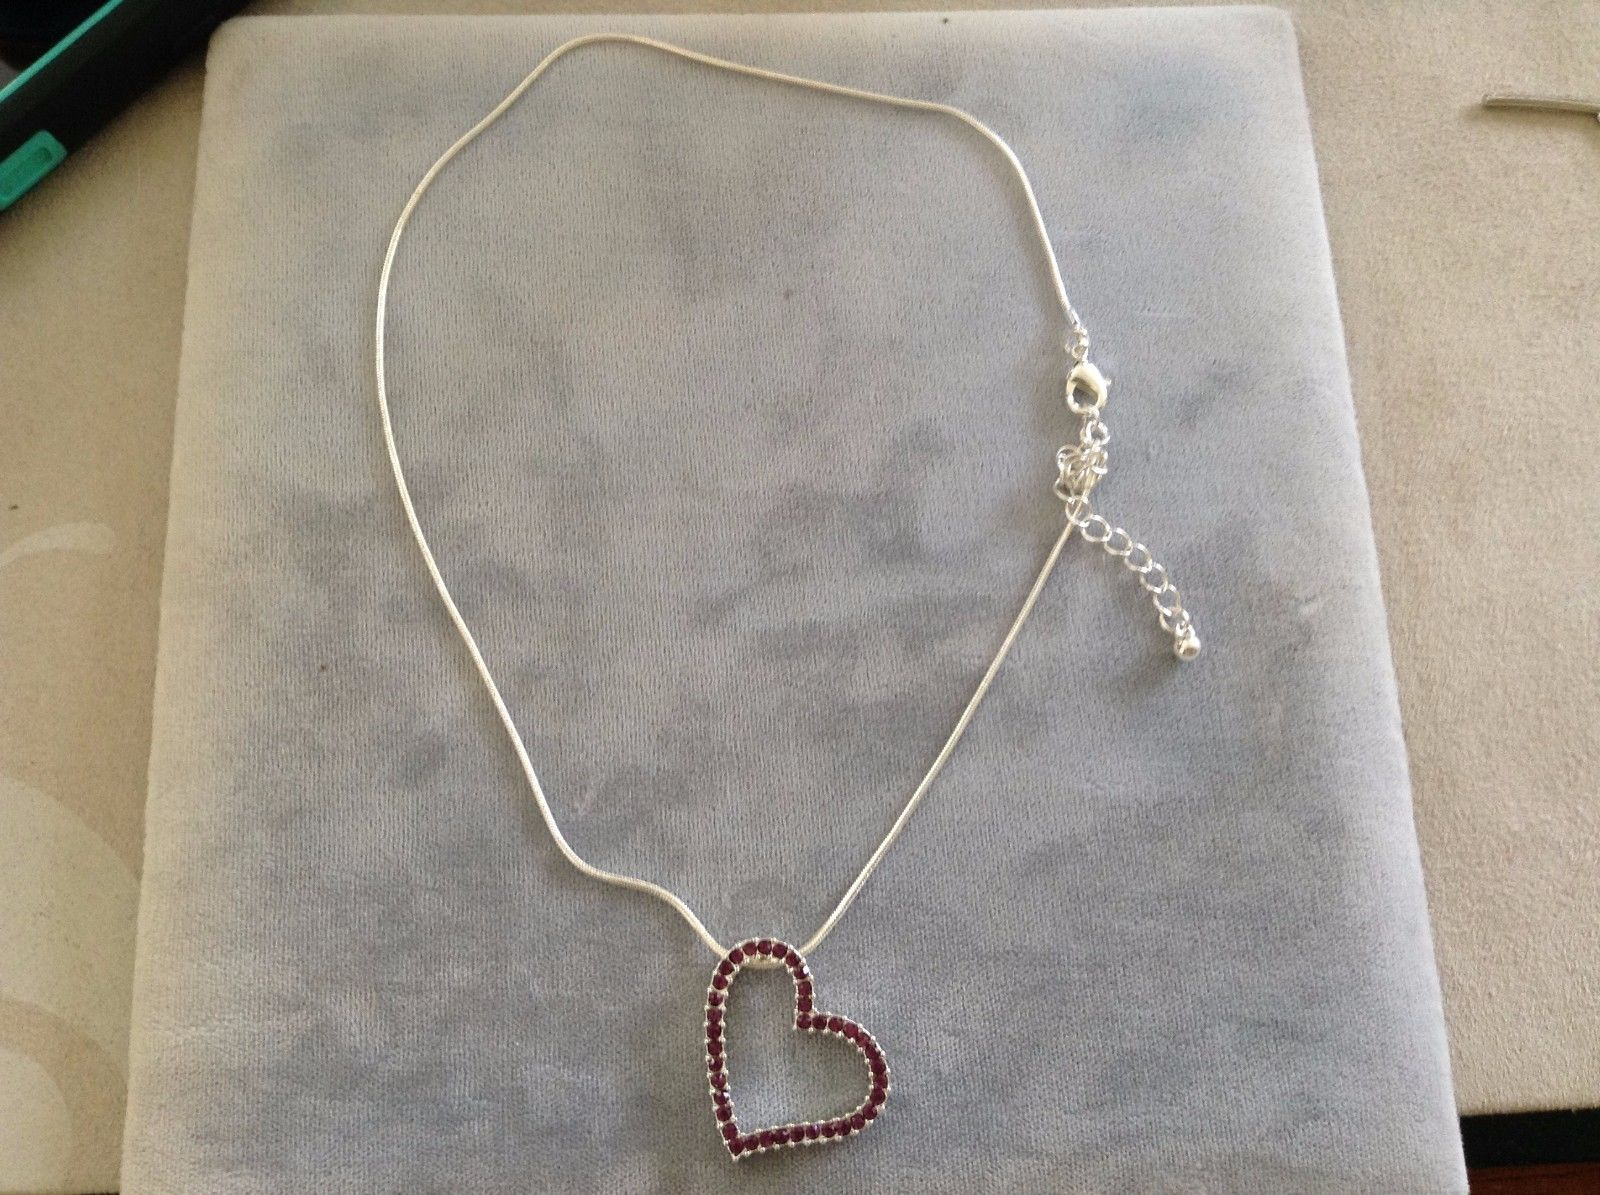 New Allure February Birthstone Heart Necklace on Silver Toned Chain